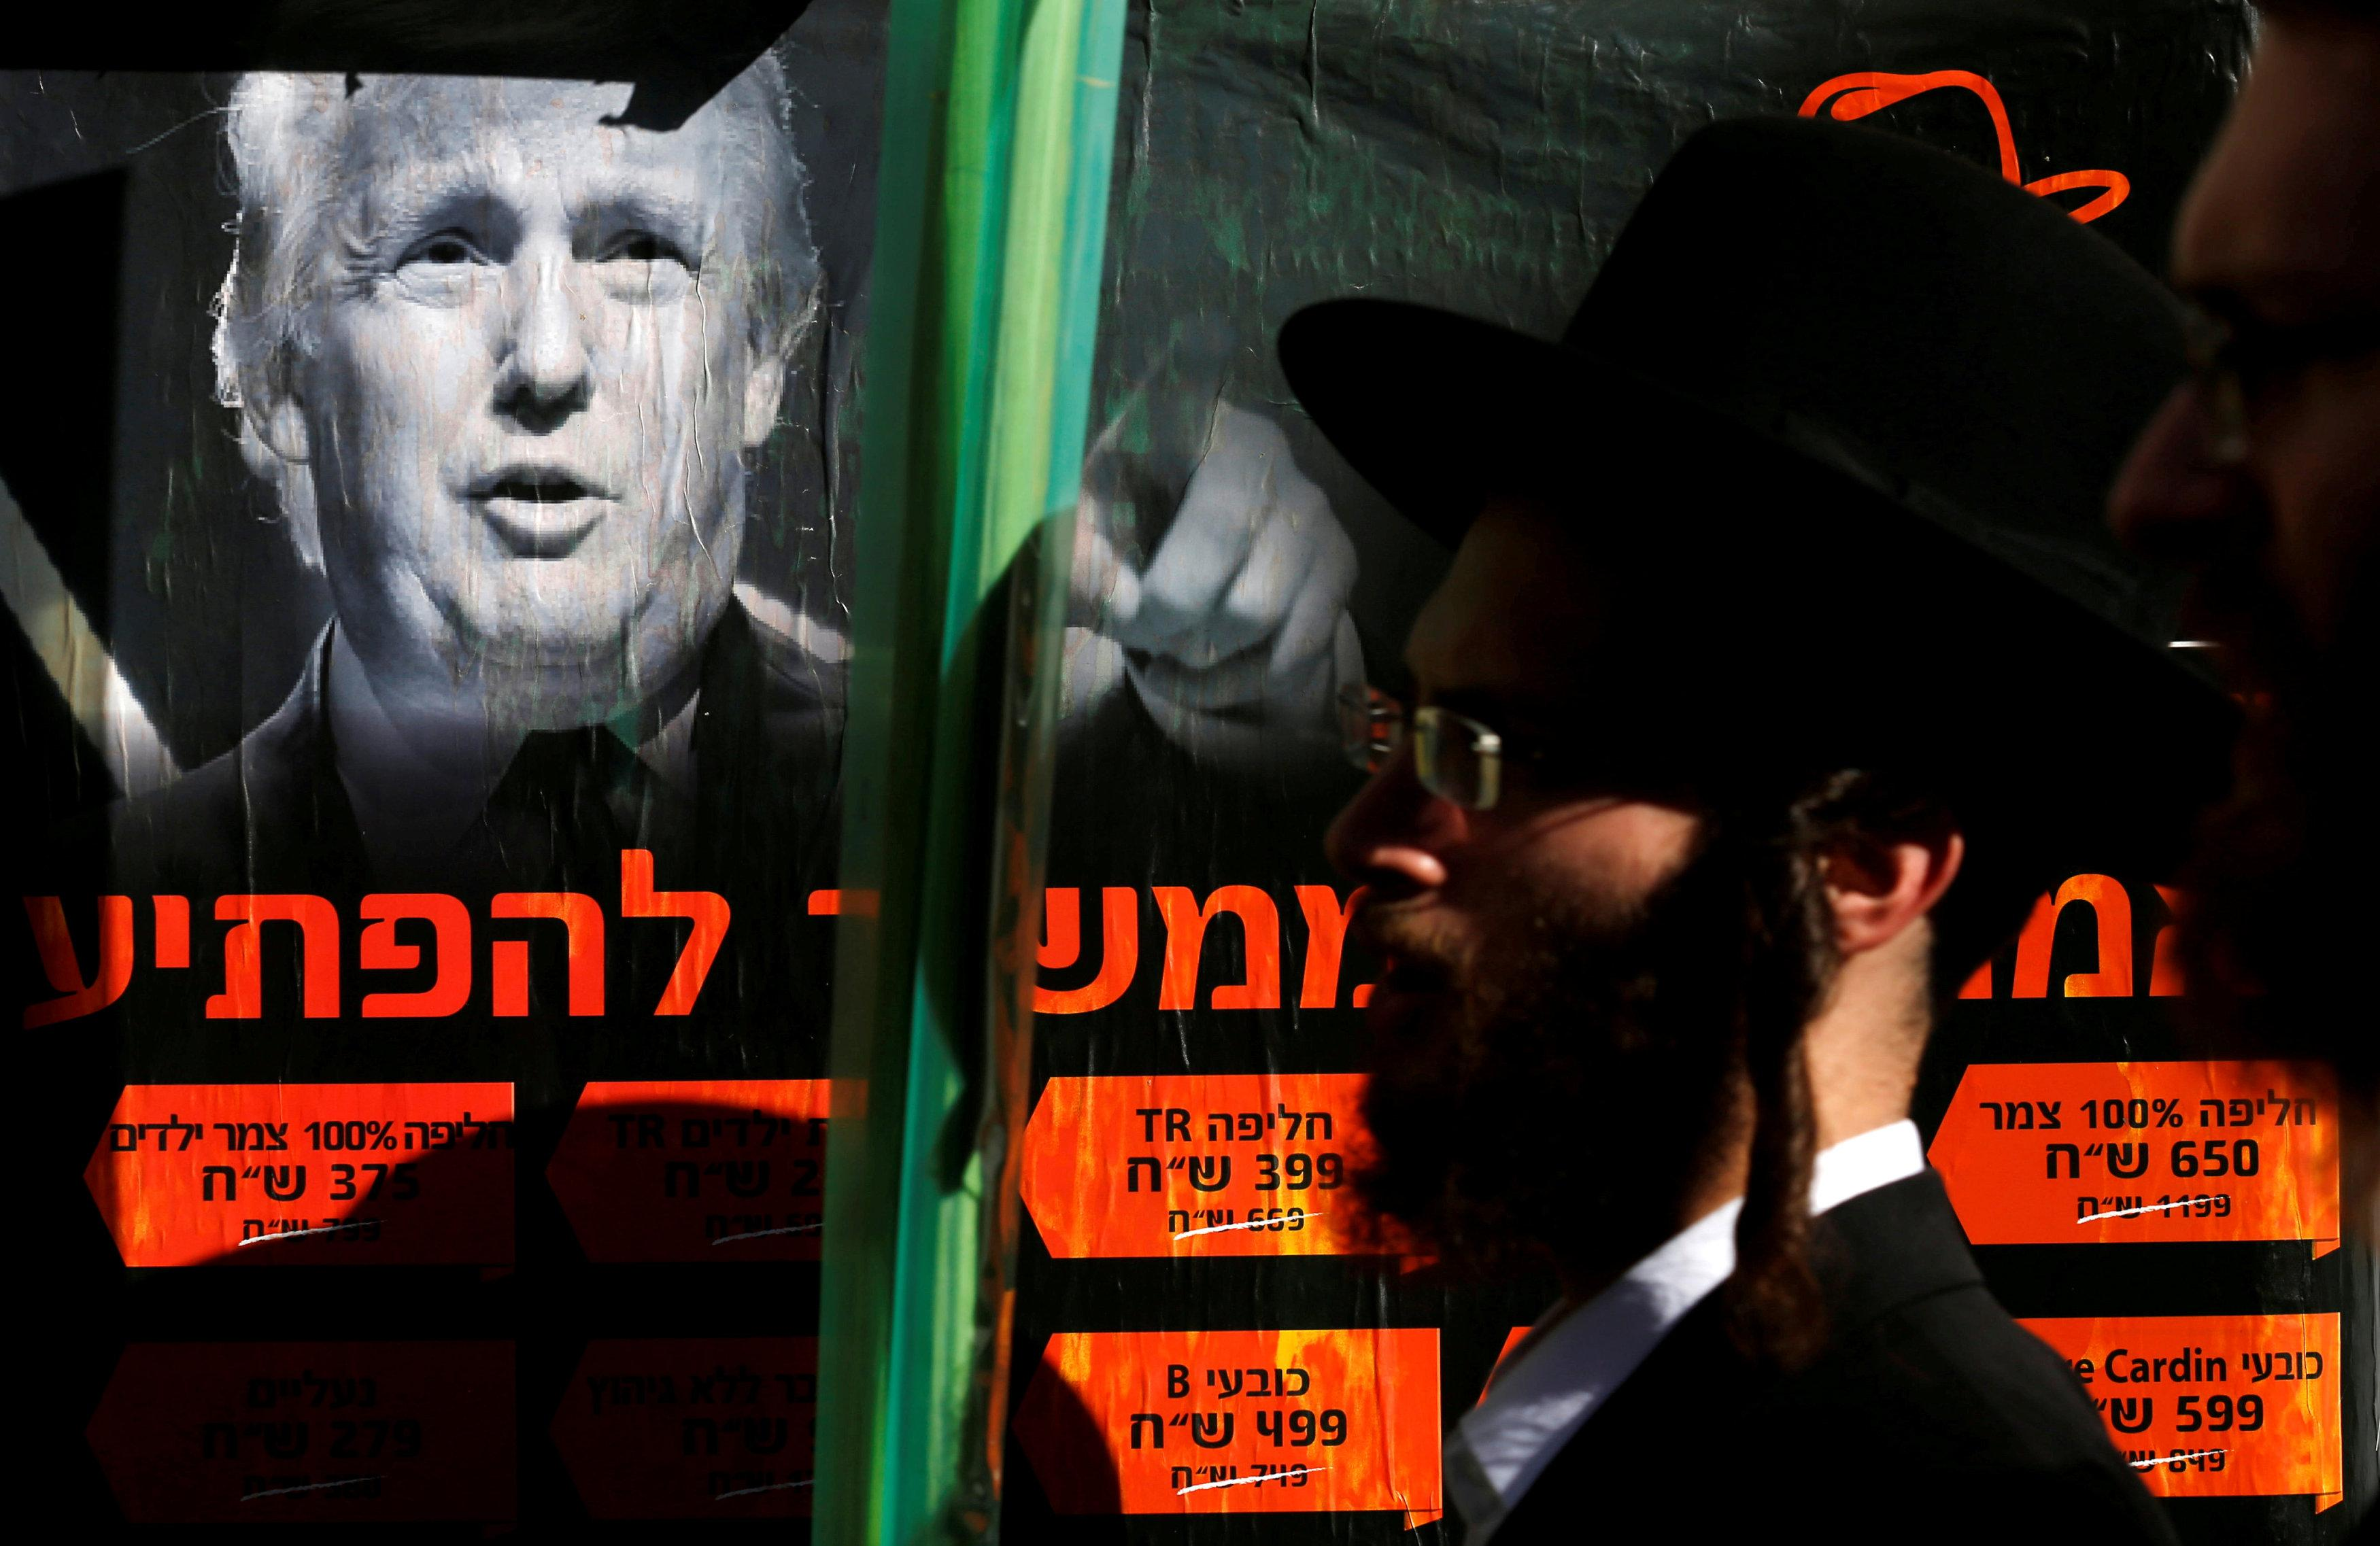 Israel's right wing has grand plans for Trump era - Reuters